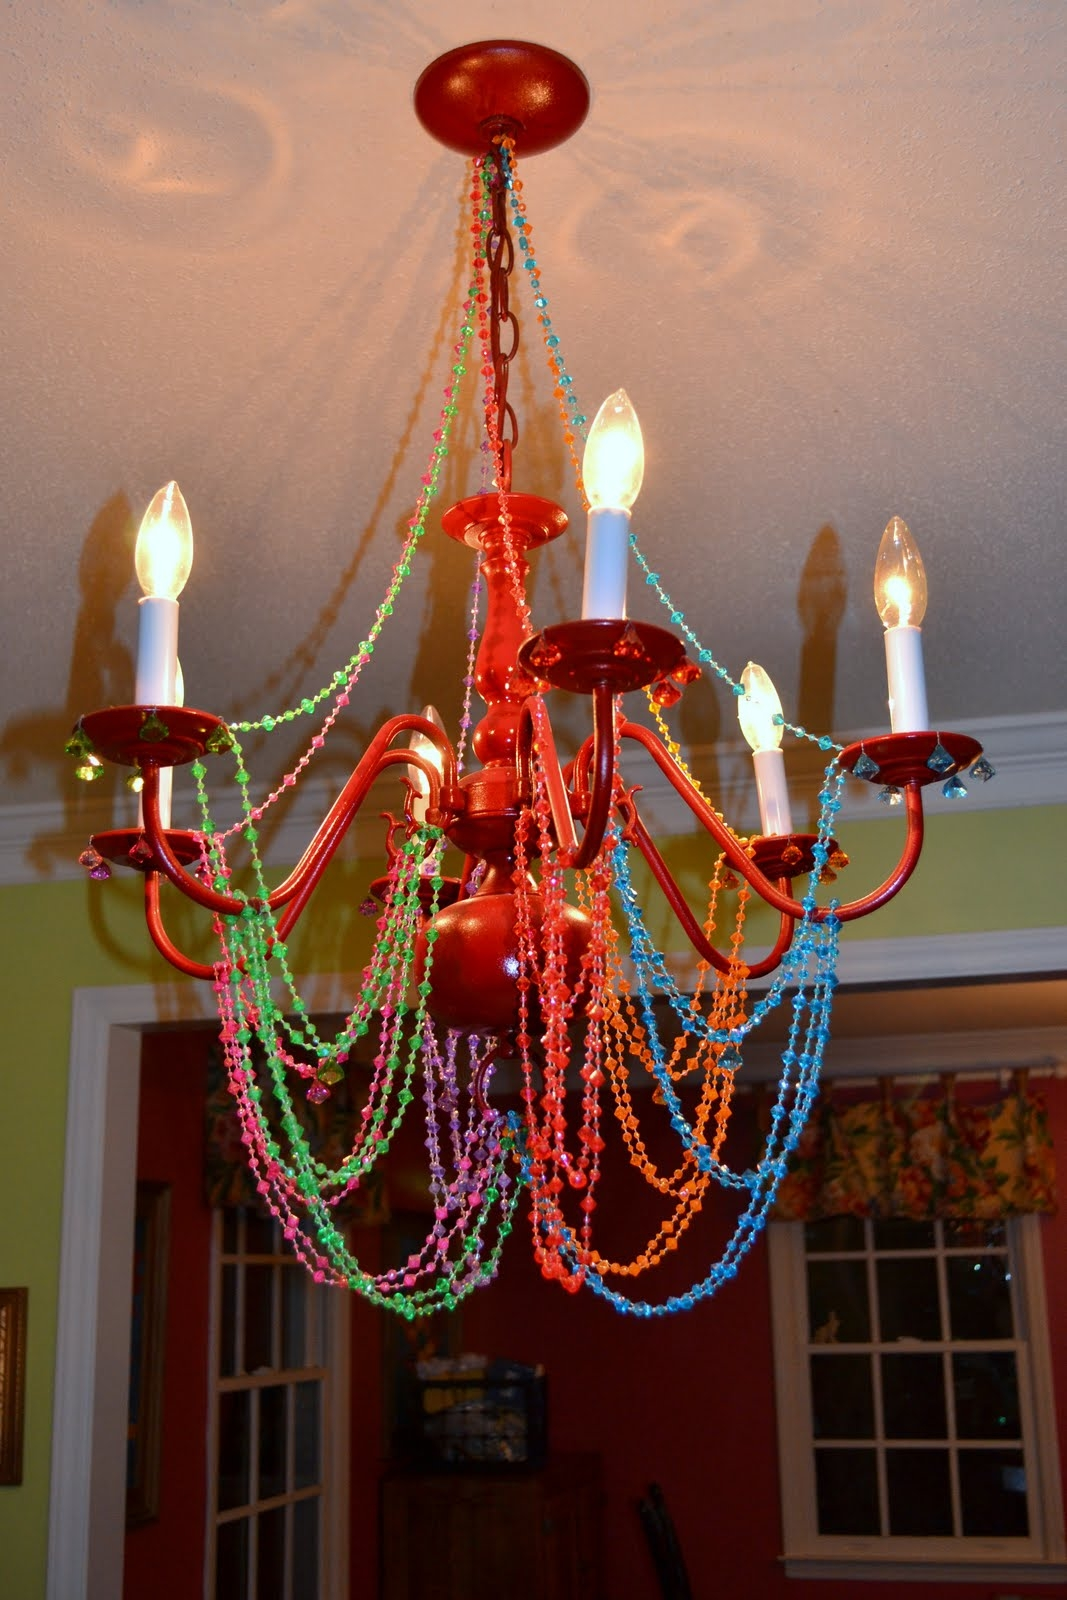 Chandelier Interesting Colorful Chandelier Fascinating Colorful Within Gypsy Chandeliers (View 6 of 25)